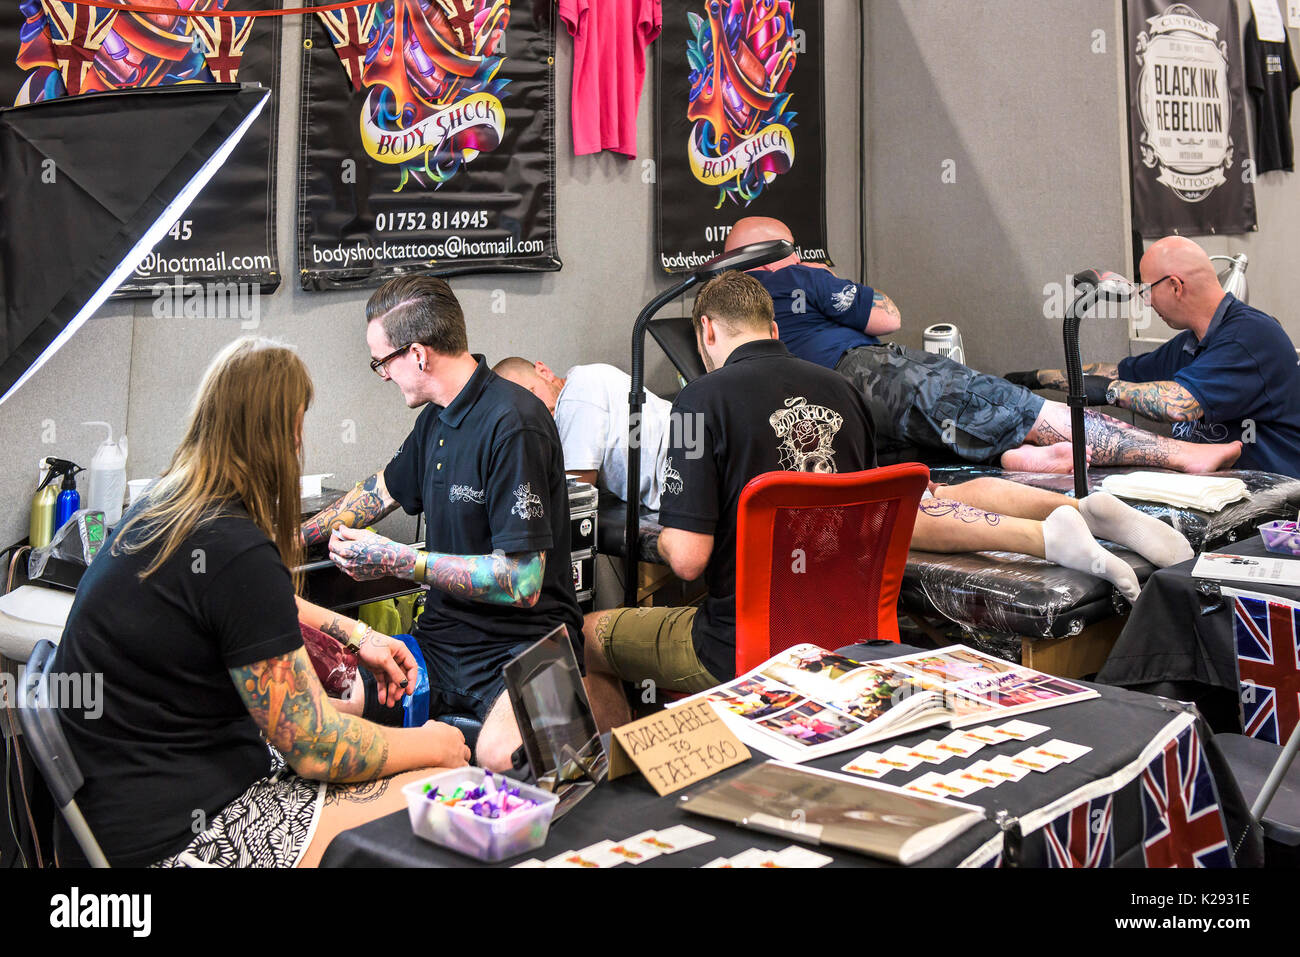 Cornwall Tattoo Convention - Tattooists working on their customers at the Cornwall tattoo Convention. Stock Photo